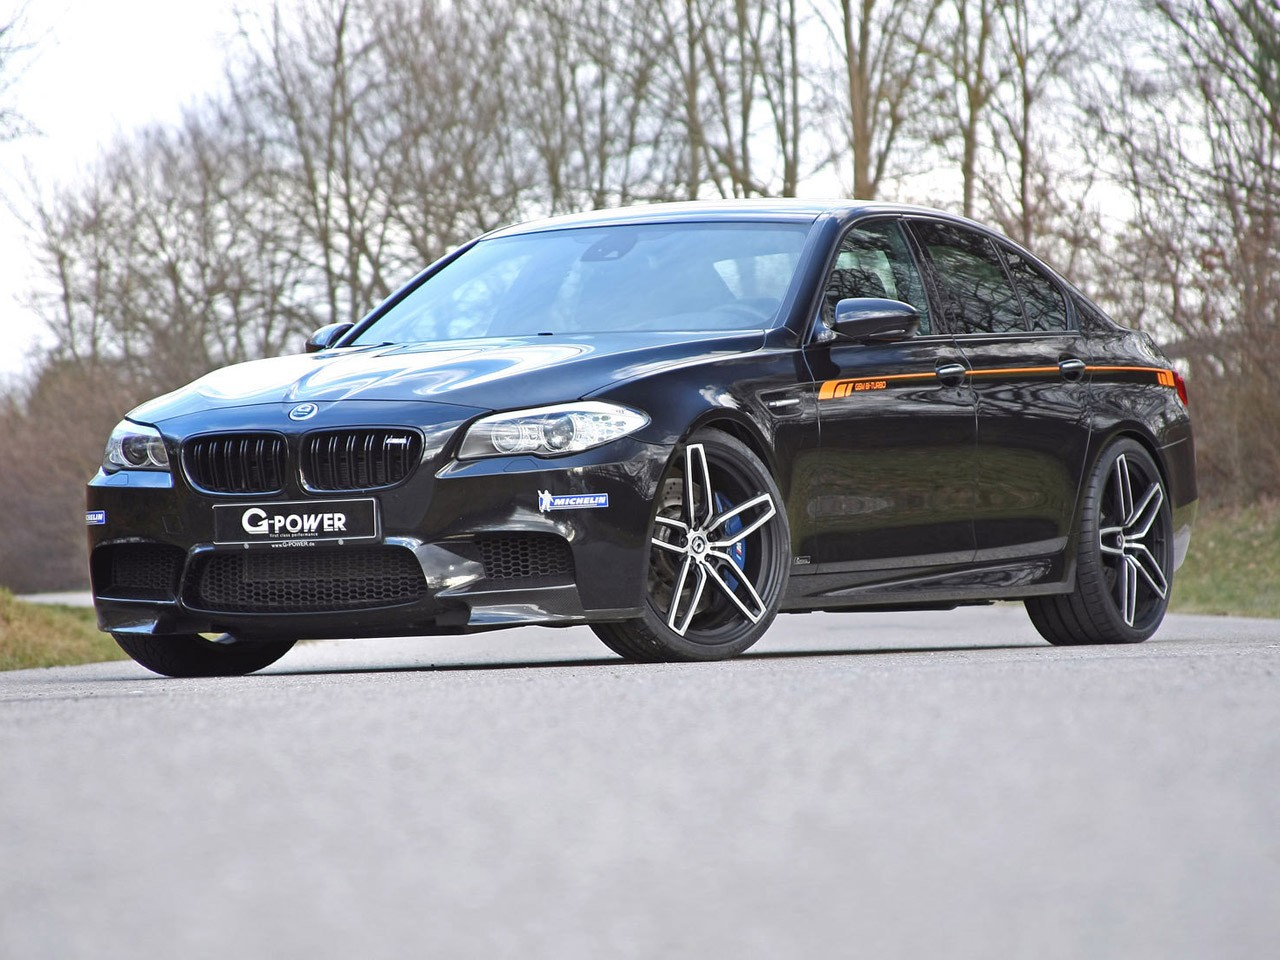 2015 G-power - Bmw M5 F10